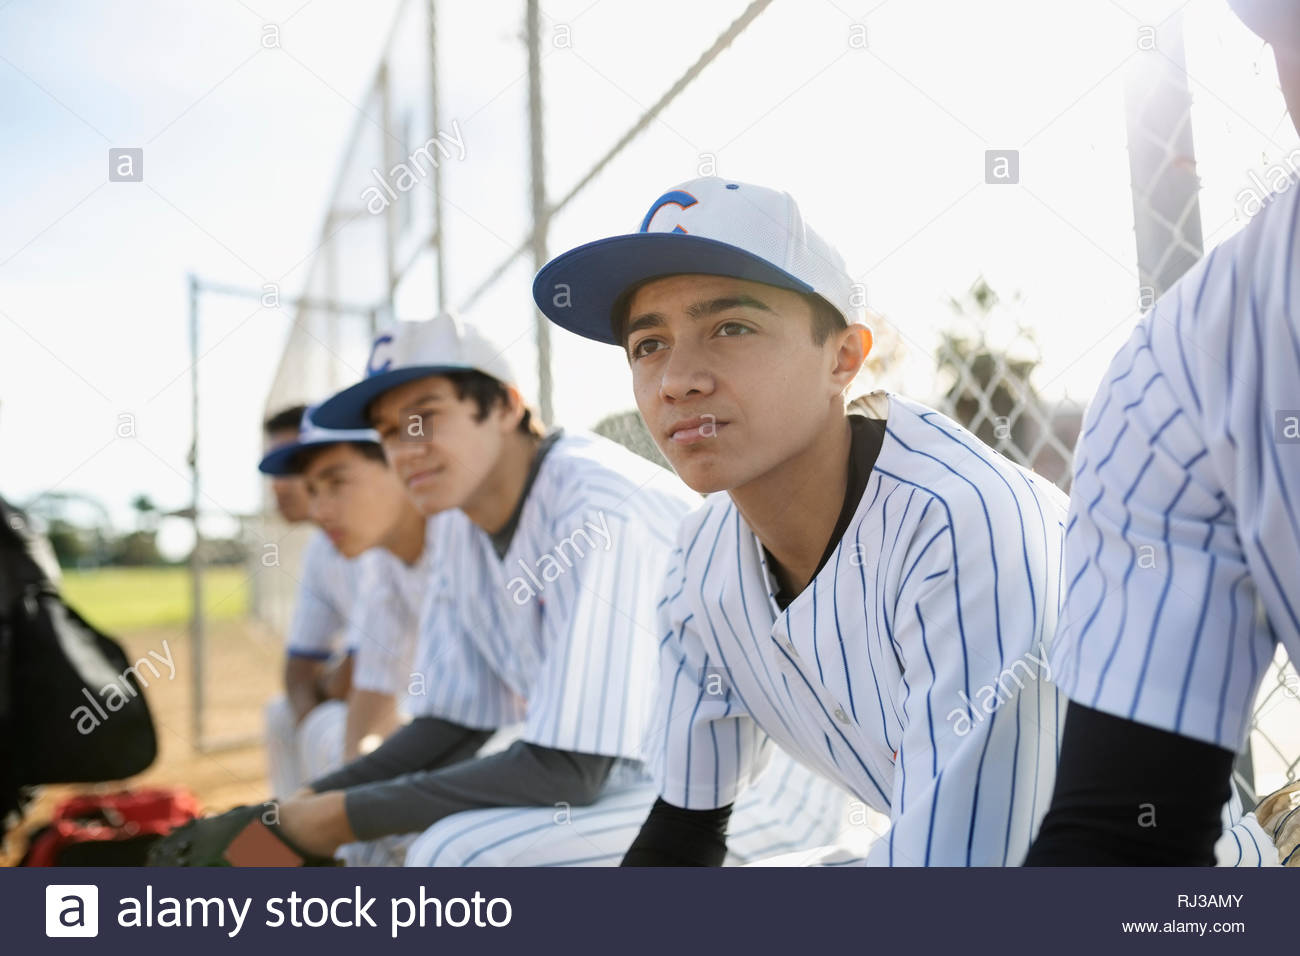 Joueur de baseball Latinx en attente sur banc Photo Stock